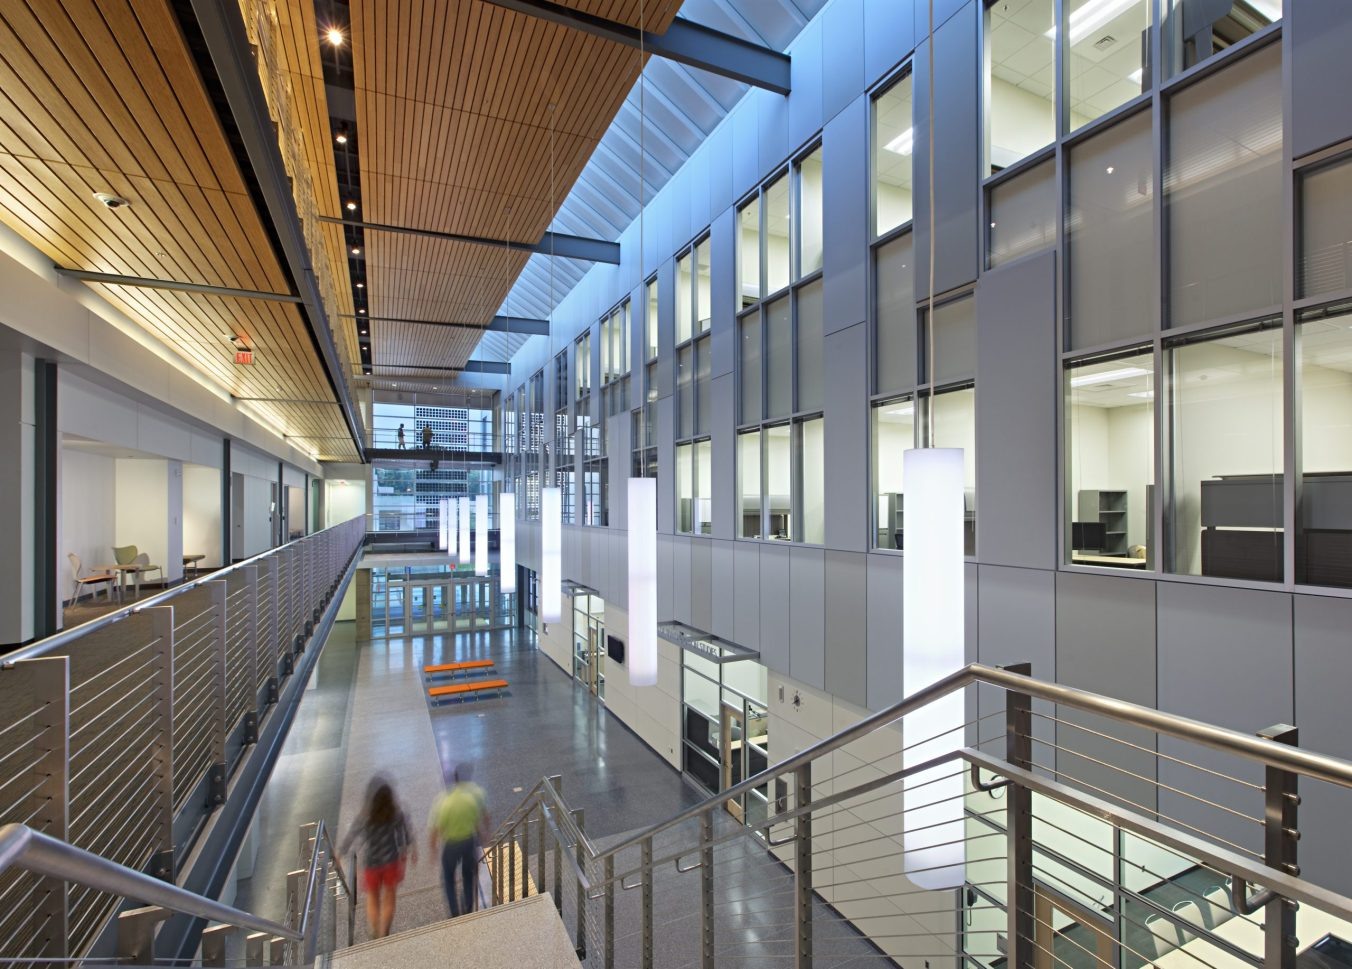 Morgan State University Center for Built Environment and Infrastructure Studies Lobby